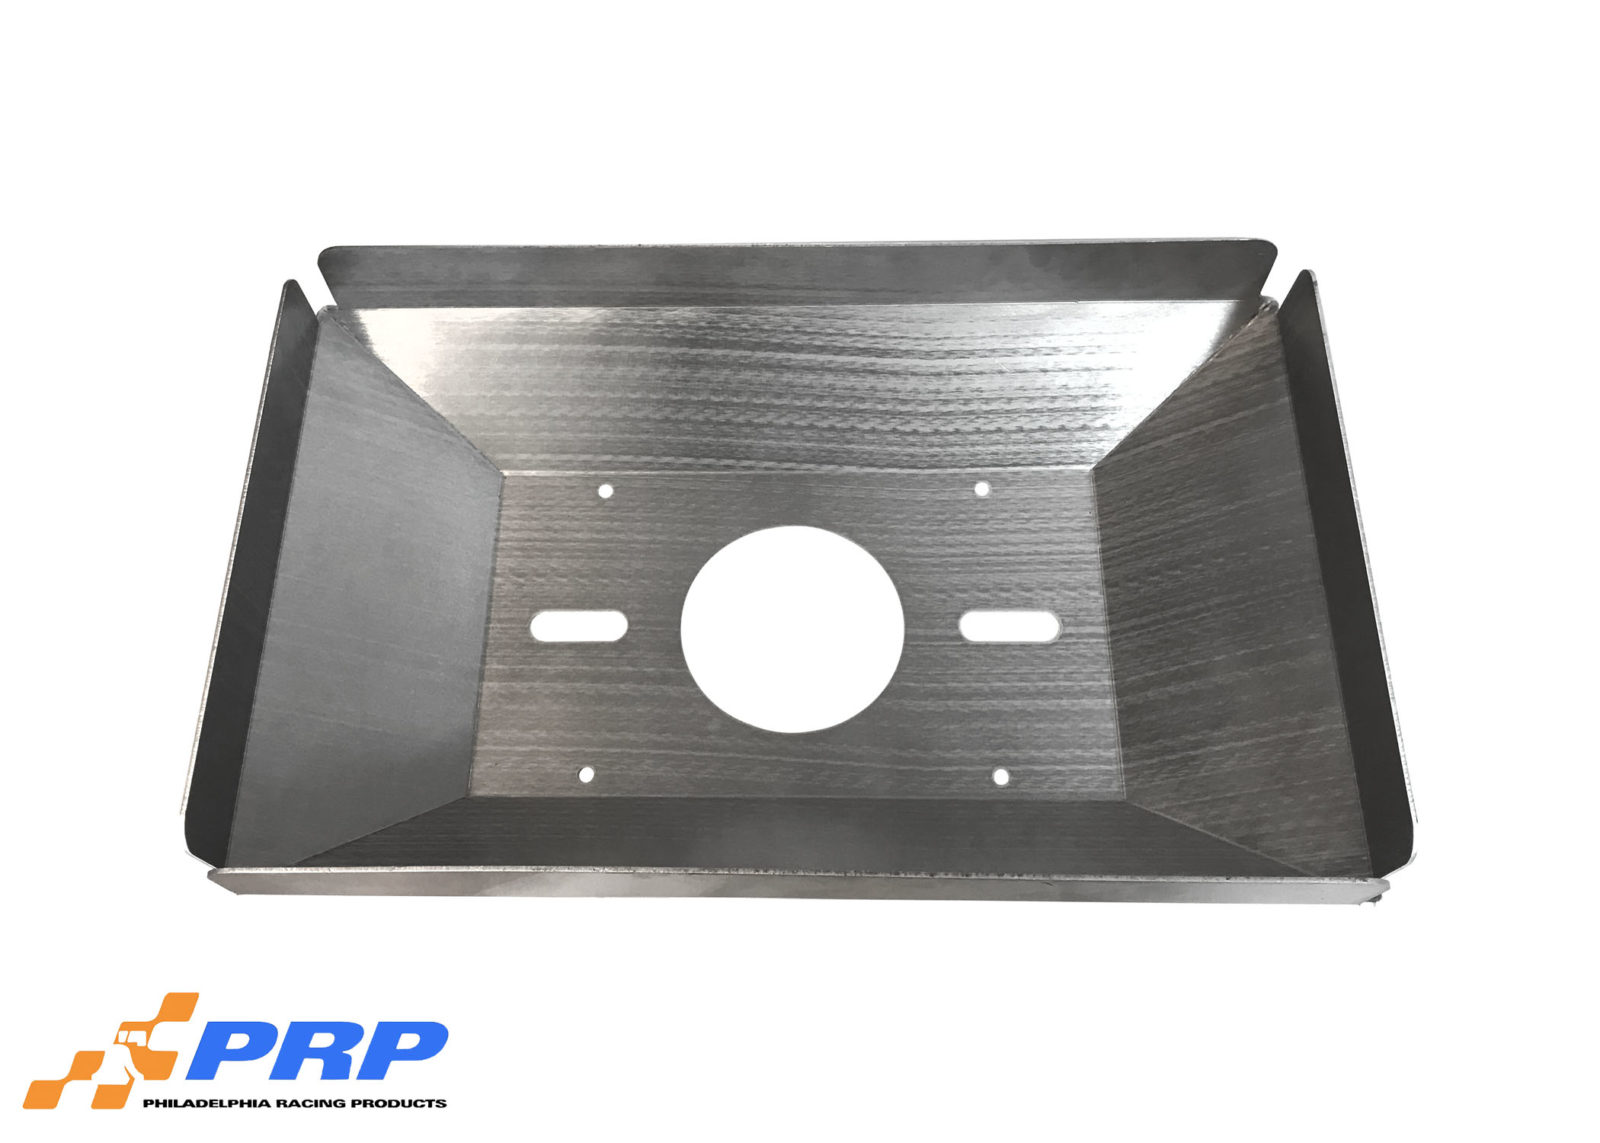 Elevated Scoop Tray made by PRP Racing Products